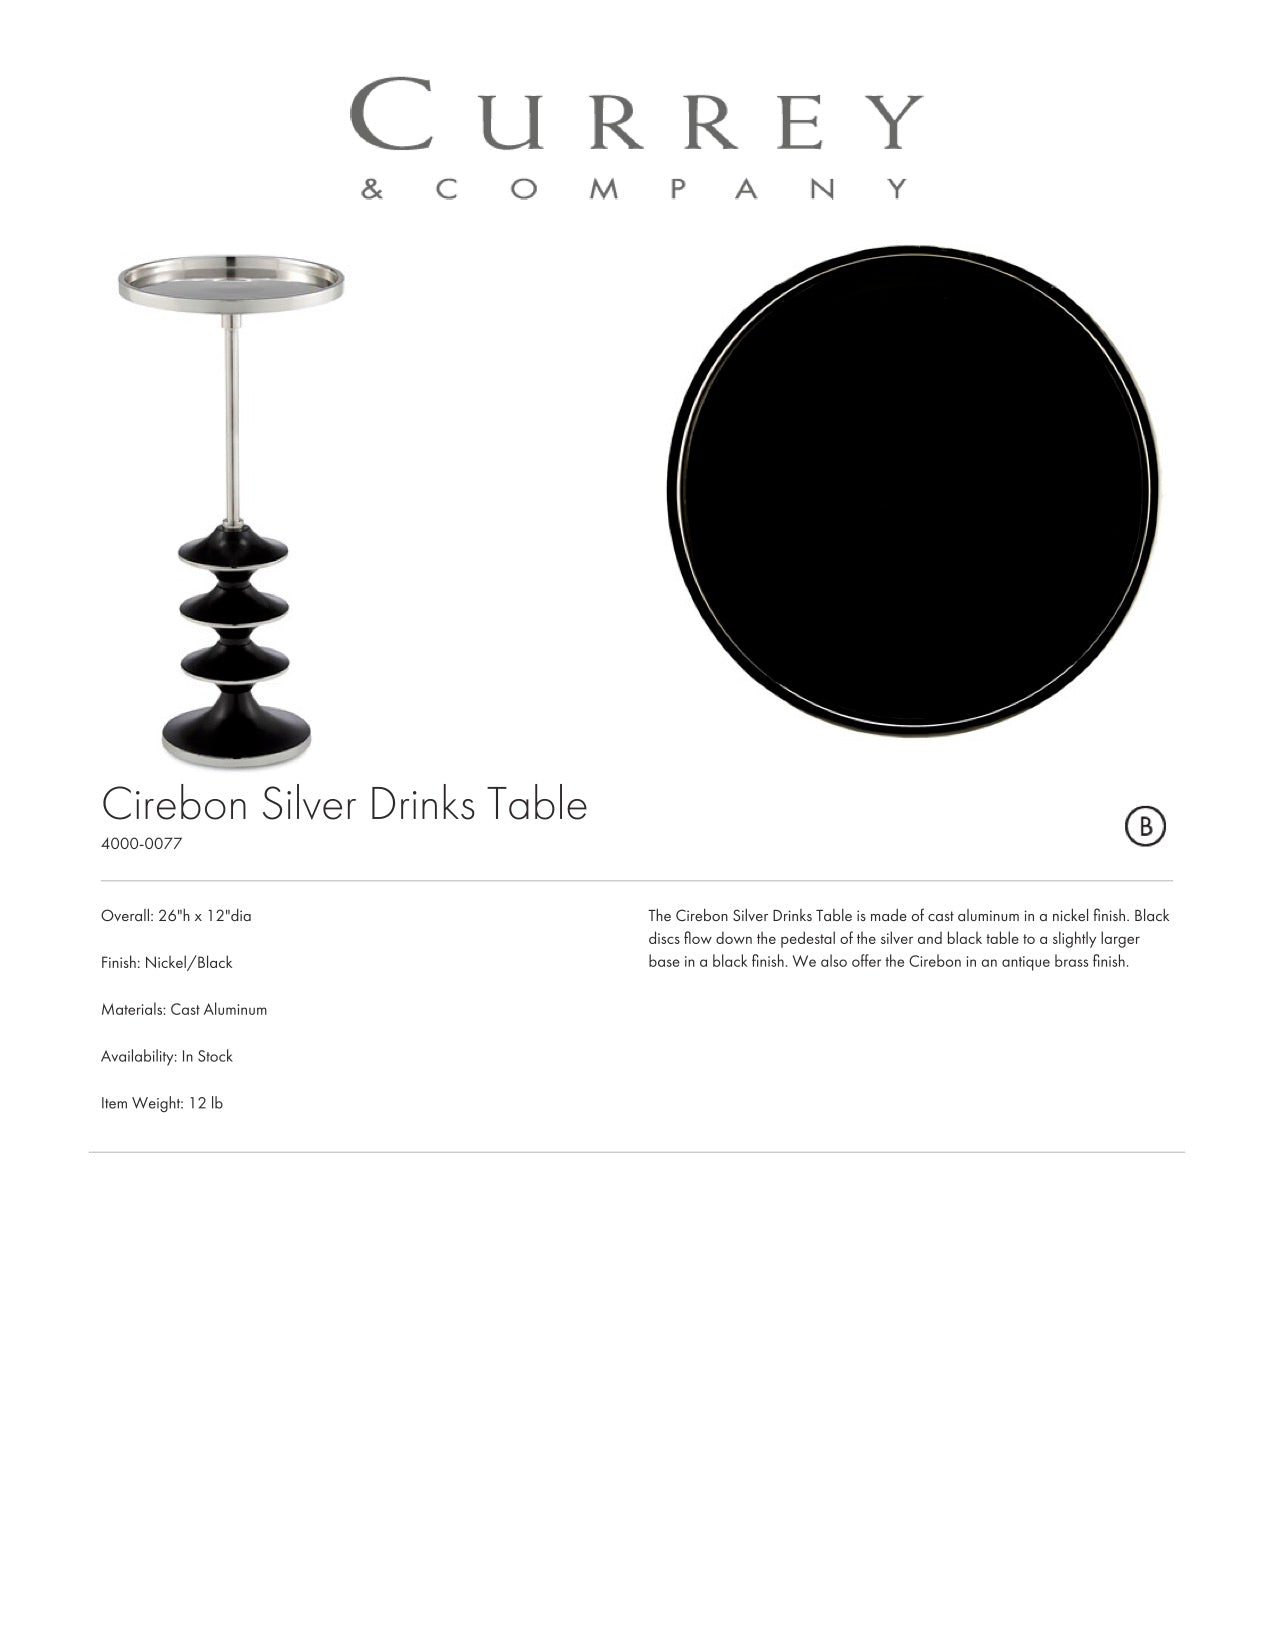 Currey and Company Cirebon Silver Drinks Table Tearsheet